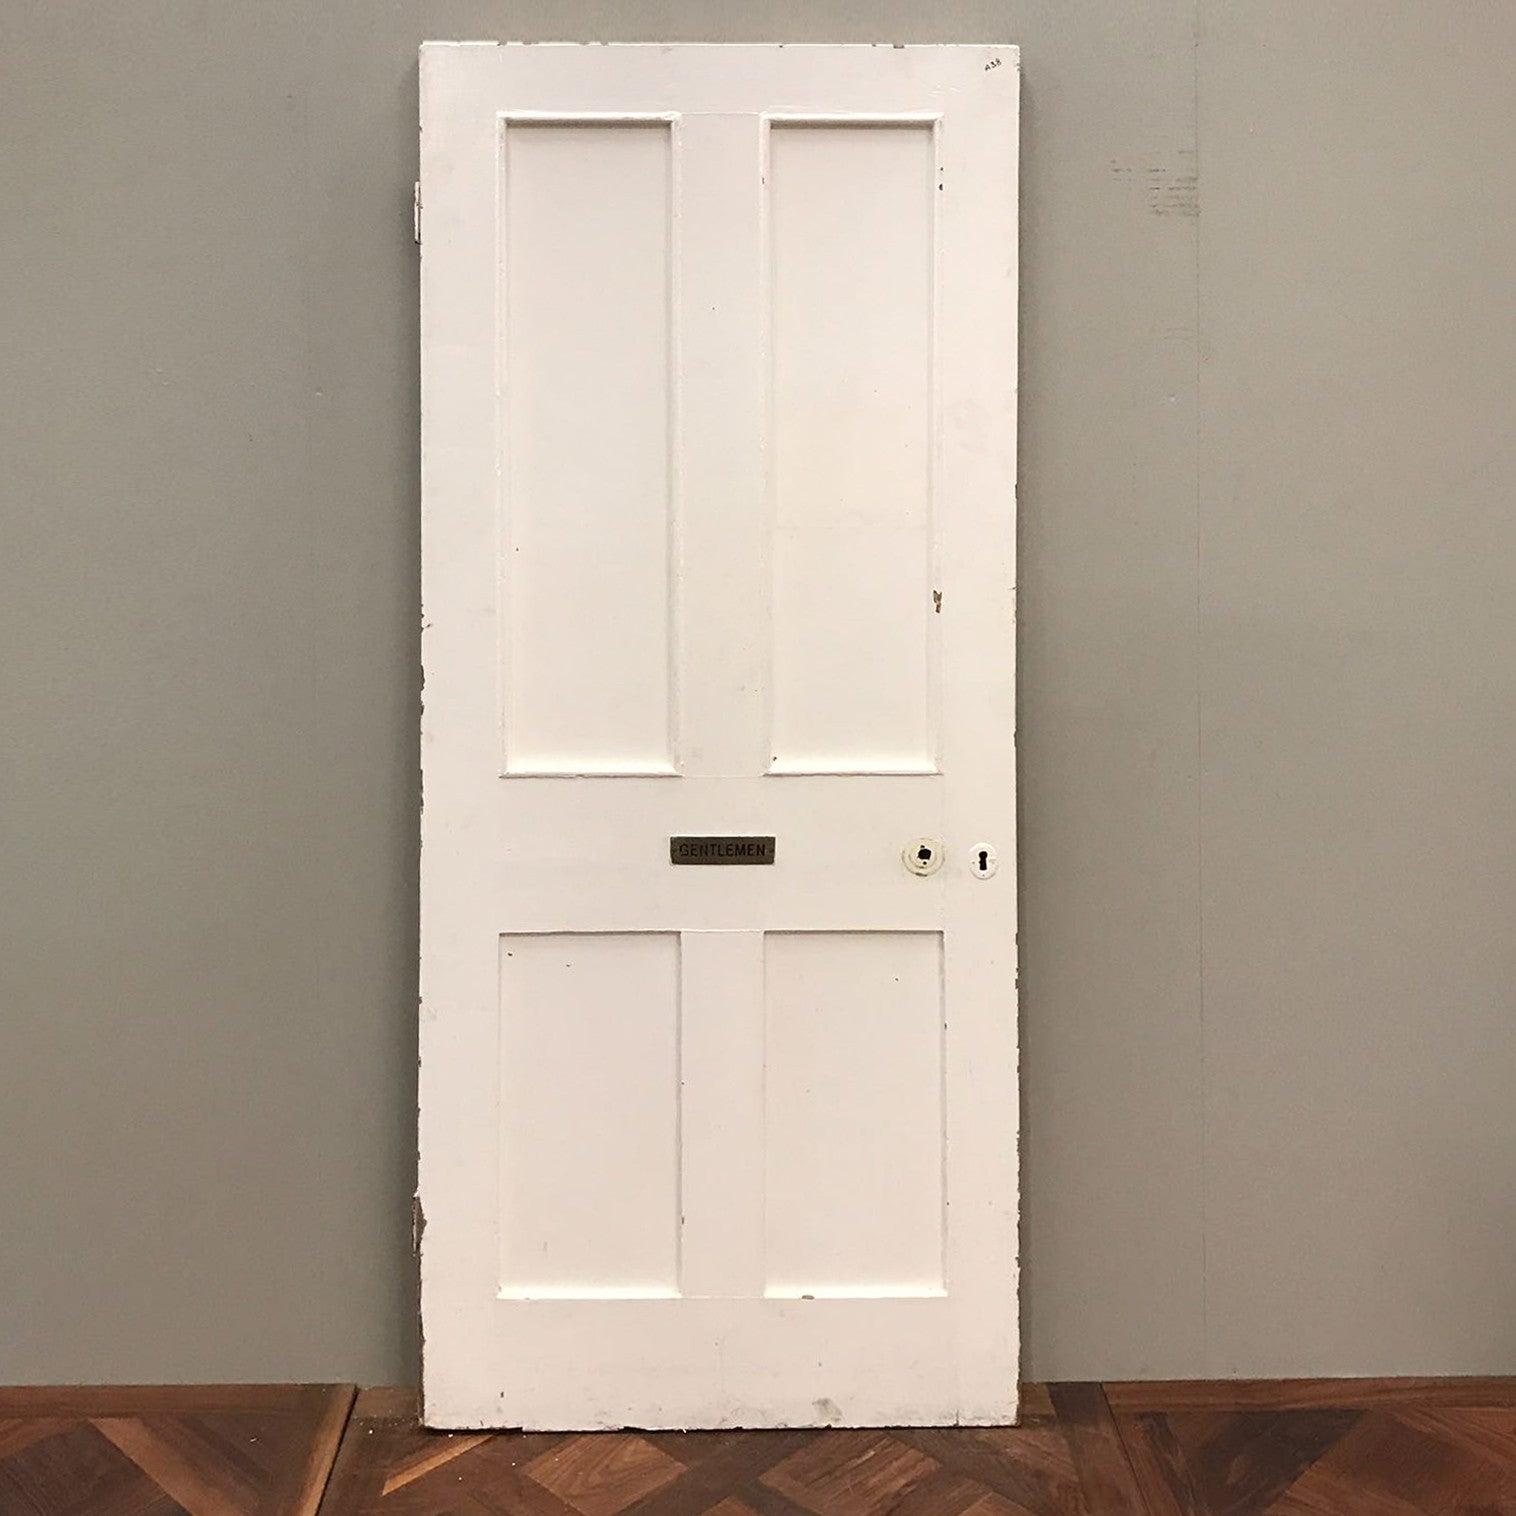 Reclaimed Victorian Four Panel Door - 200cm x 80cm x 5cm - architectural-forum